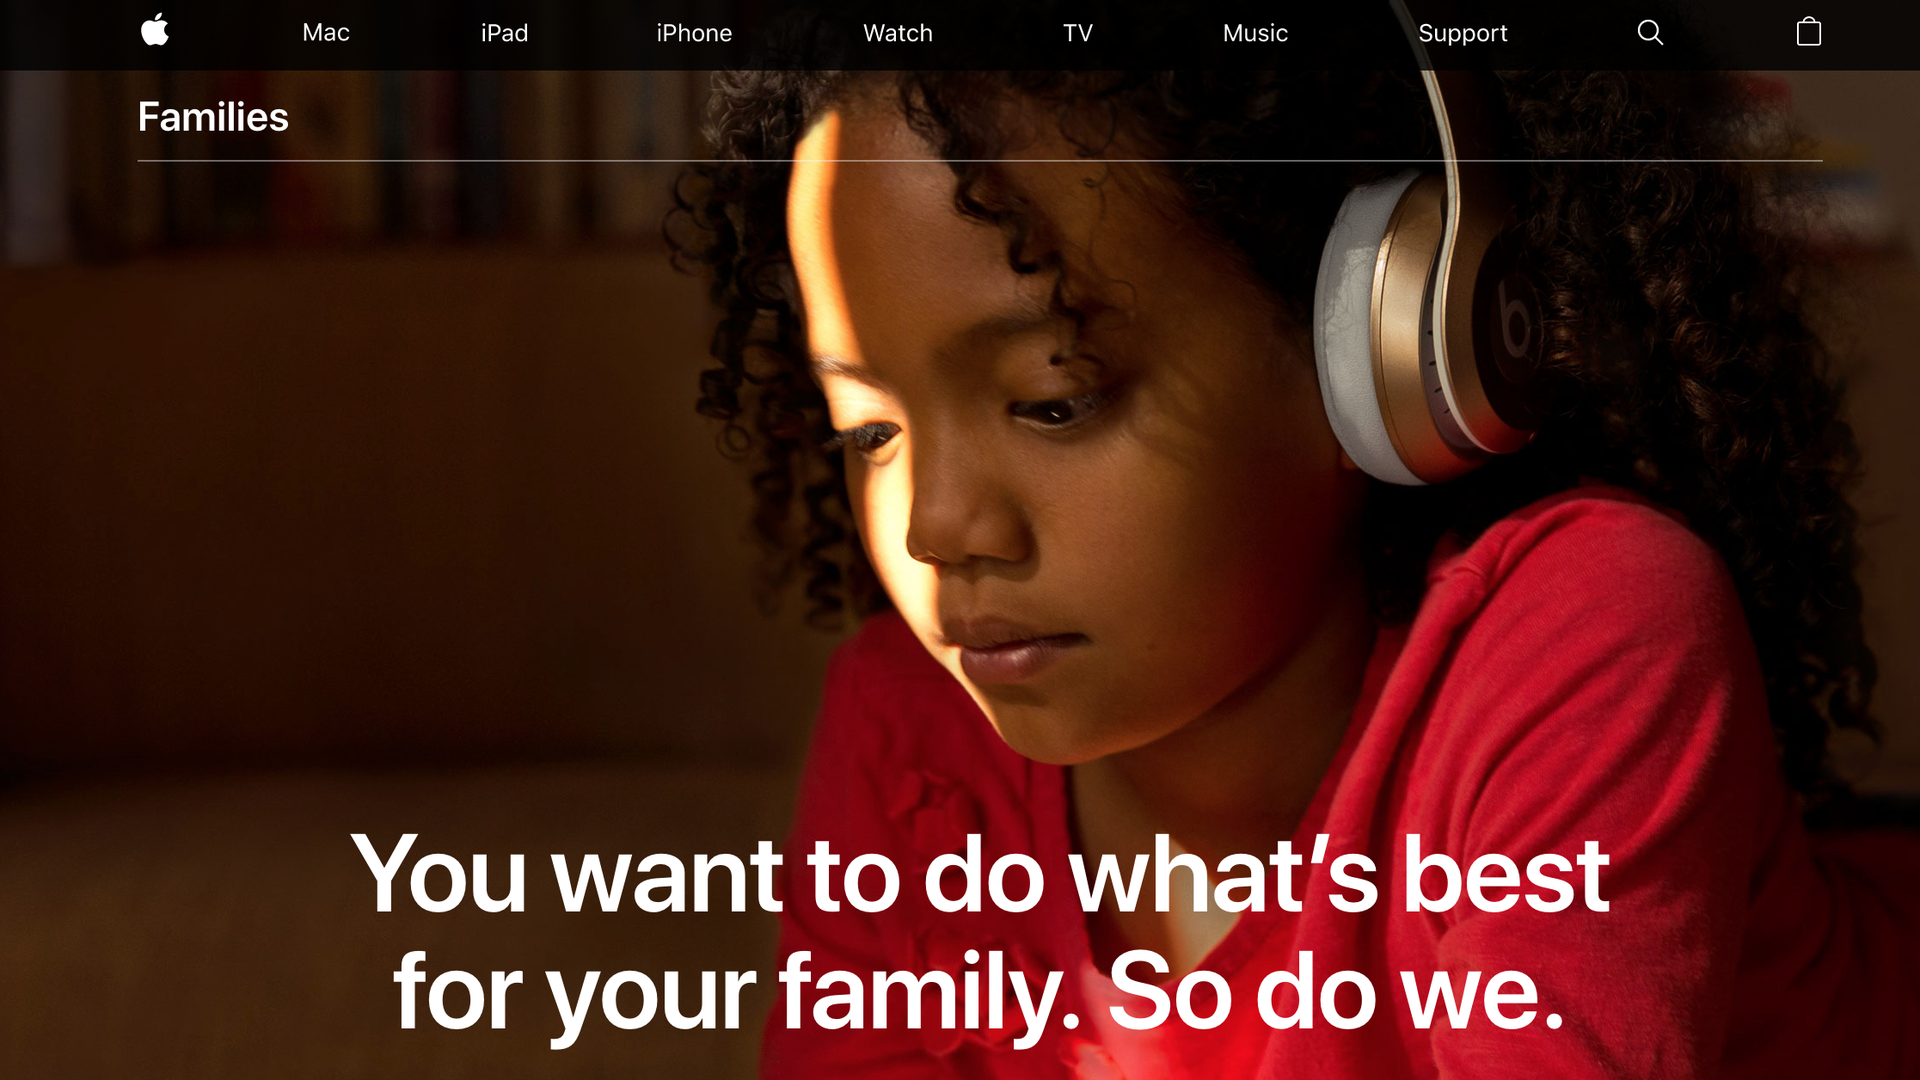 Apple's new Families page details its efforts to make devices parent friendly